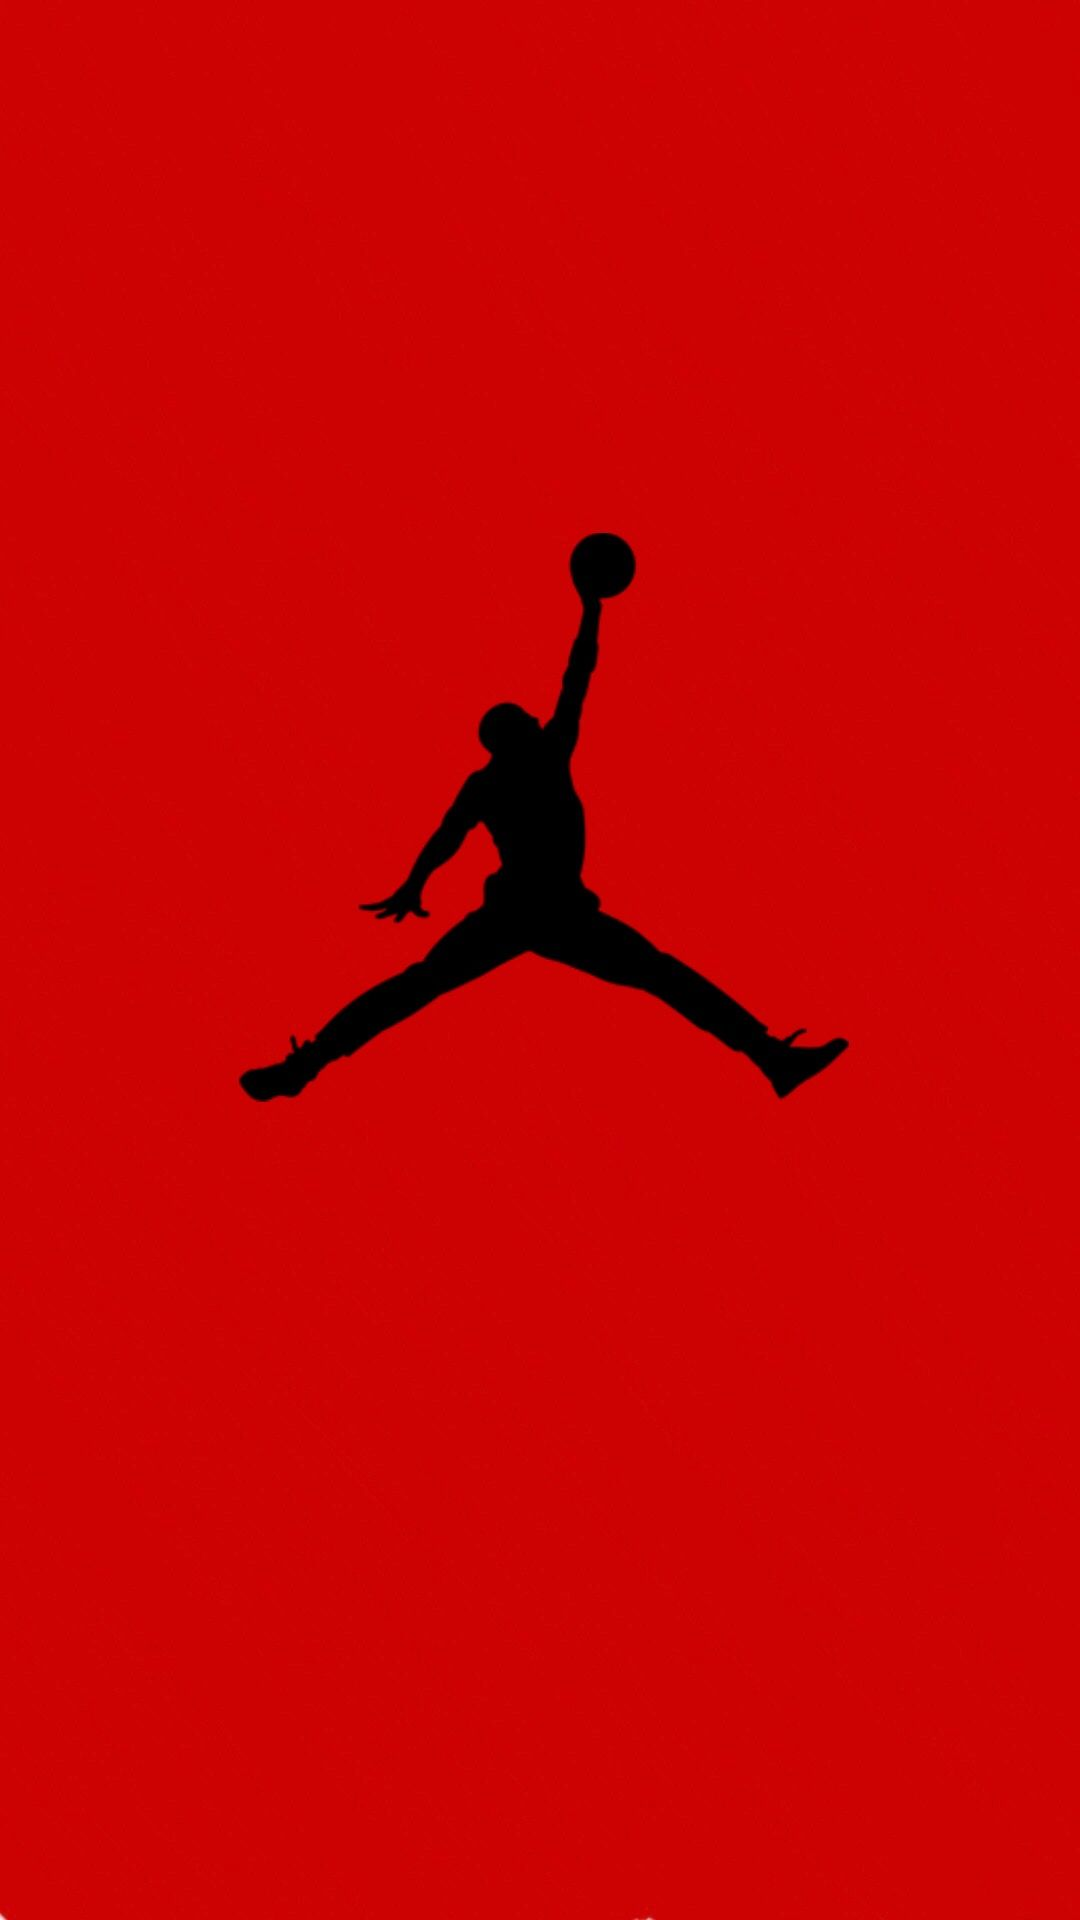 Download Wallpaper x Michael jordan Basketball Logo Игрушки